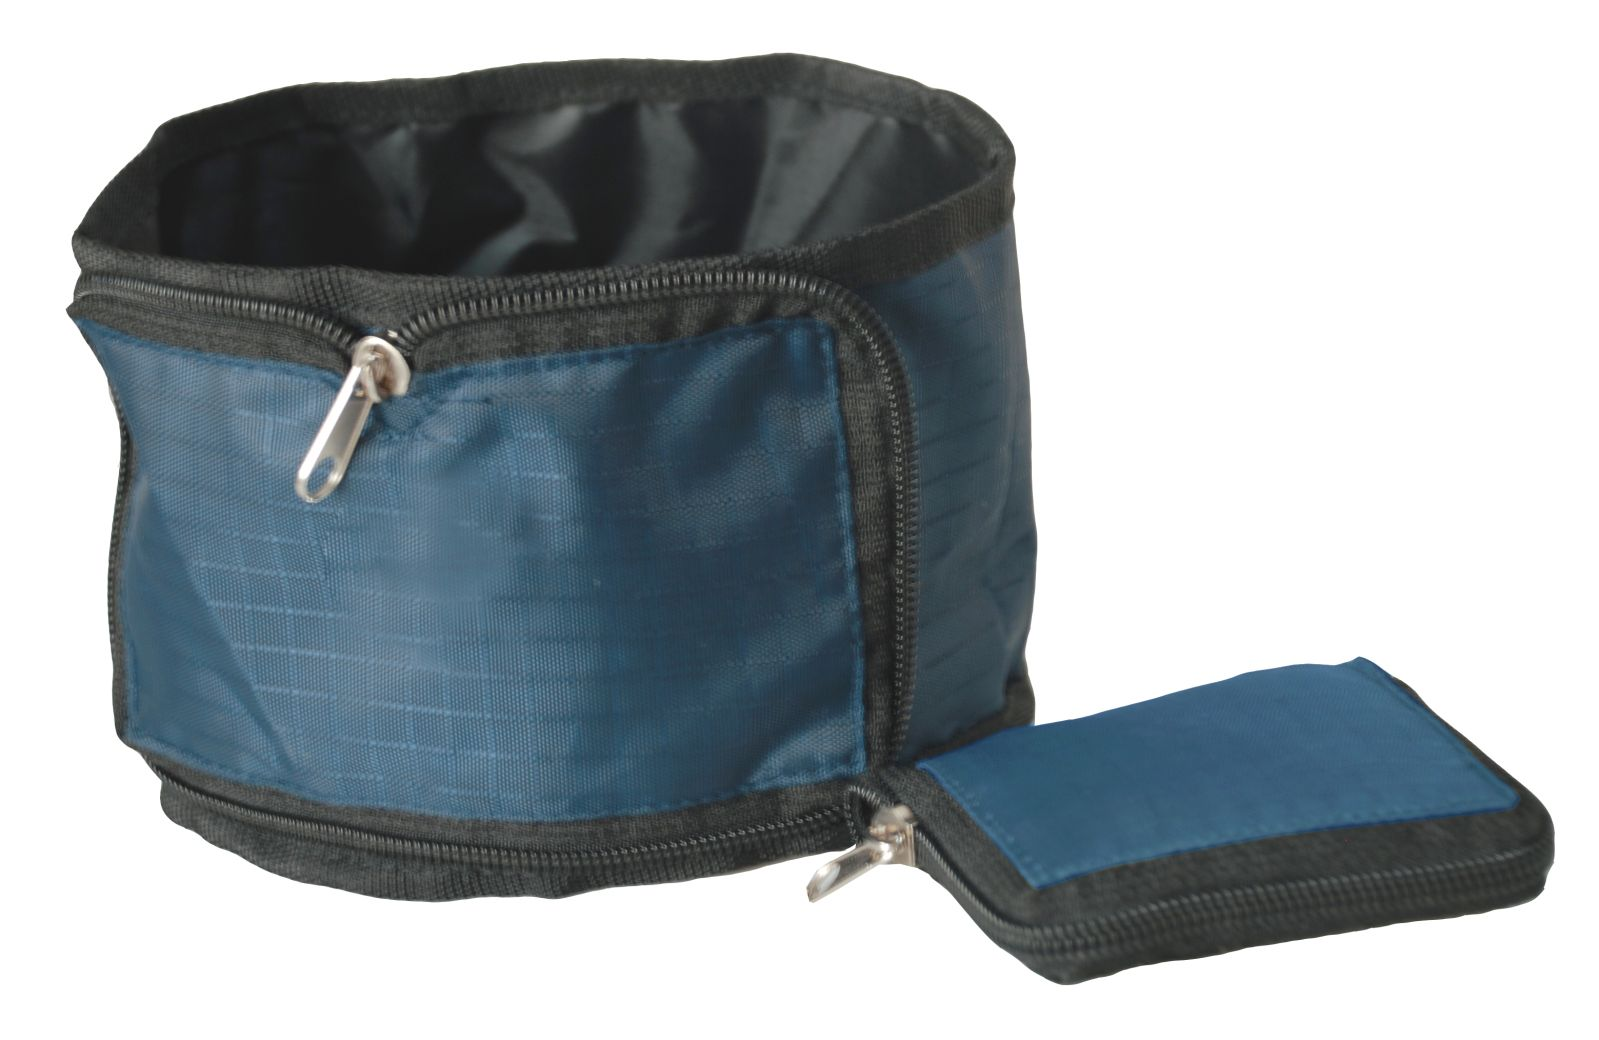 SINGLE FOLDING WALLET ZIPPERED TRAVEL PET BOWL